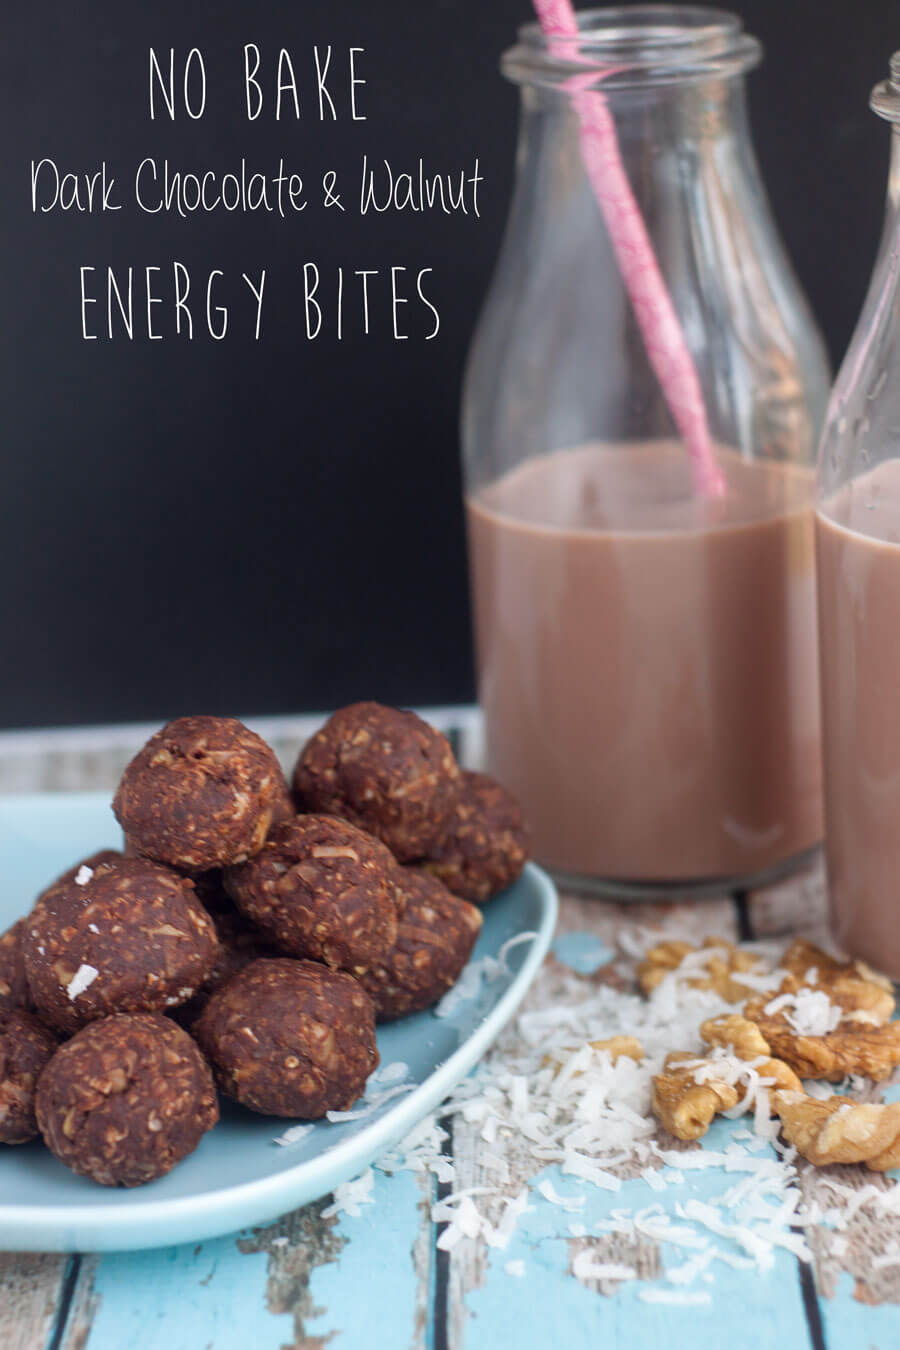 Dark-Chocolate-and-Walnut-Energy-Bites---No-Bake-#HelloNutchello-{ad}-from-Nap-Time-Creations-